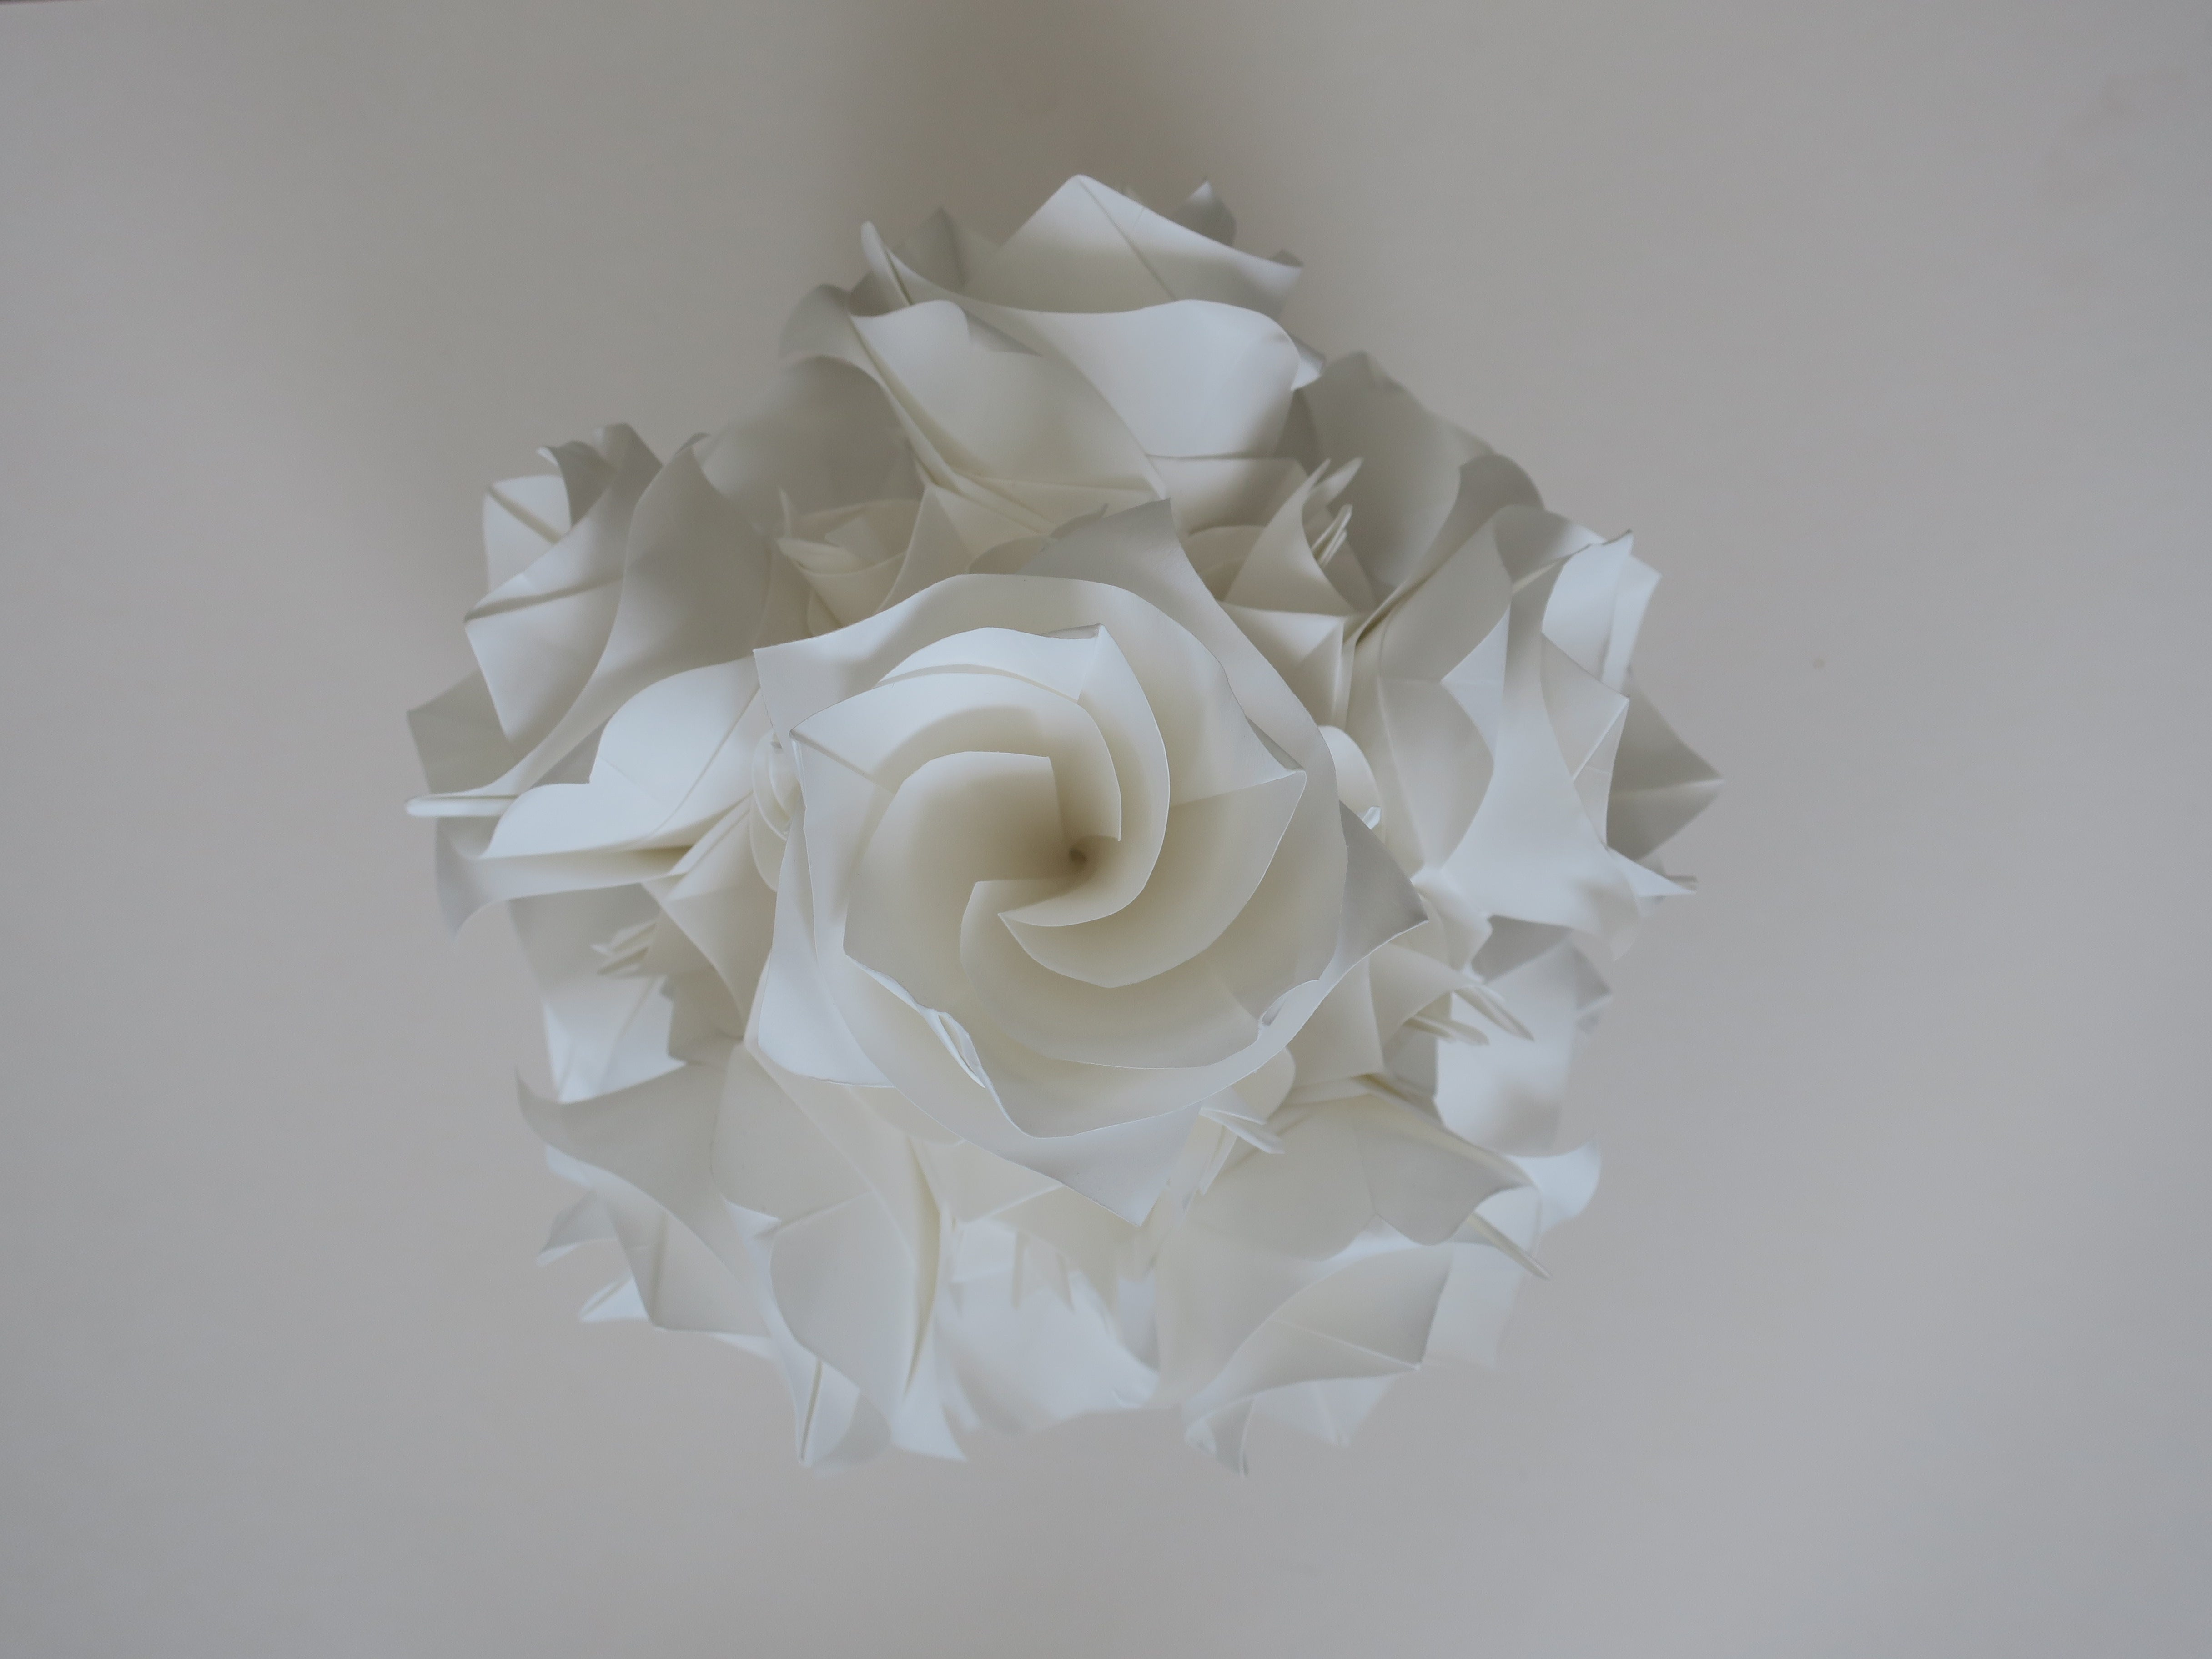 elegant origami white rose flower ball, wedding and anniversary, party event, window display